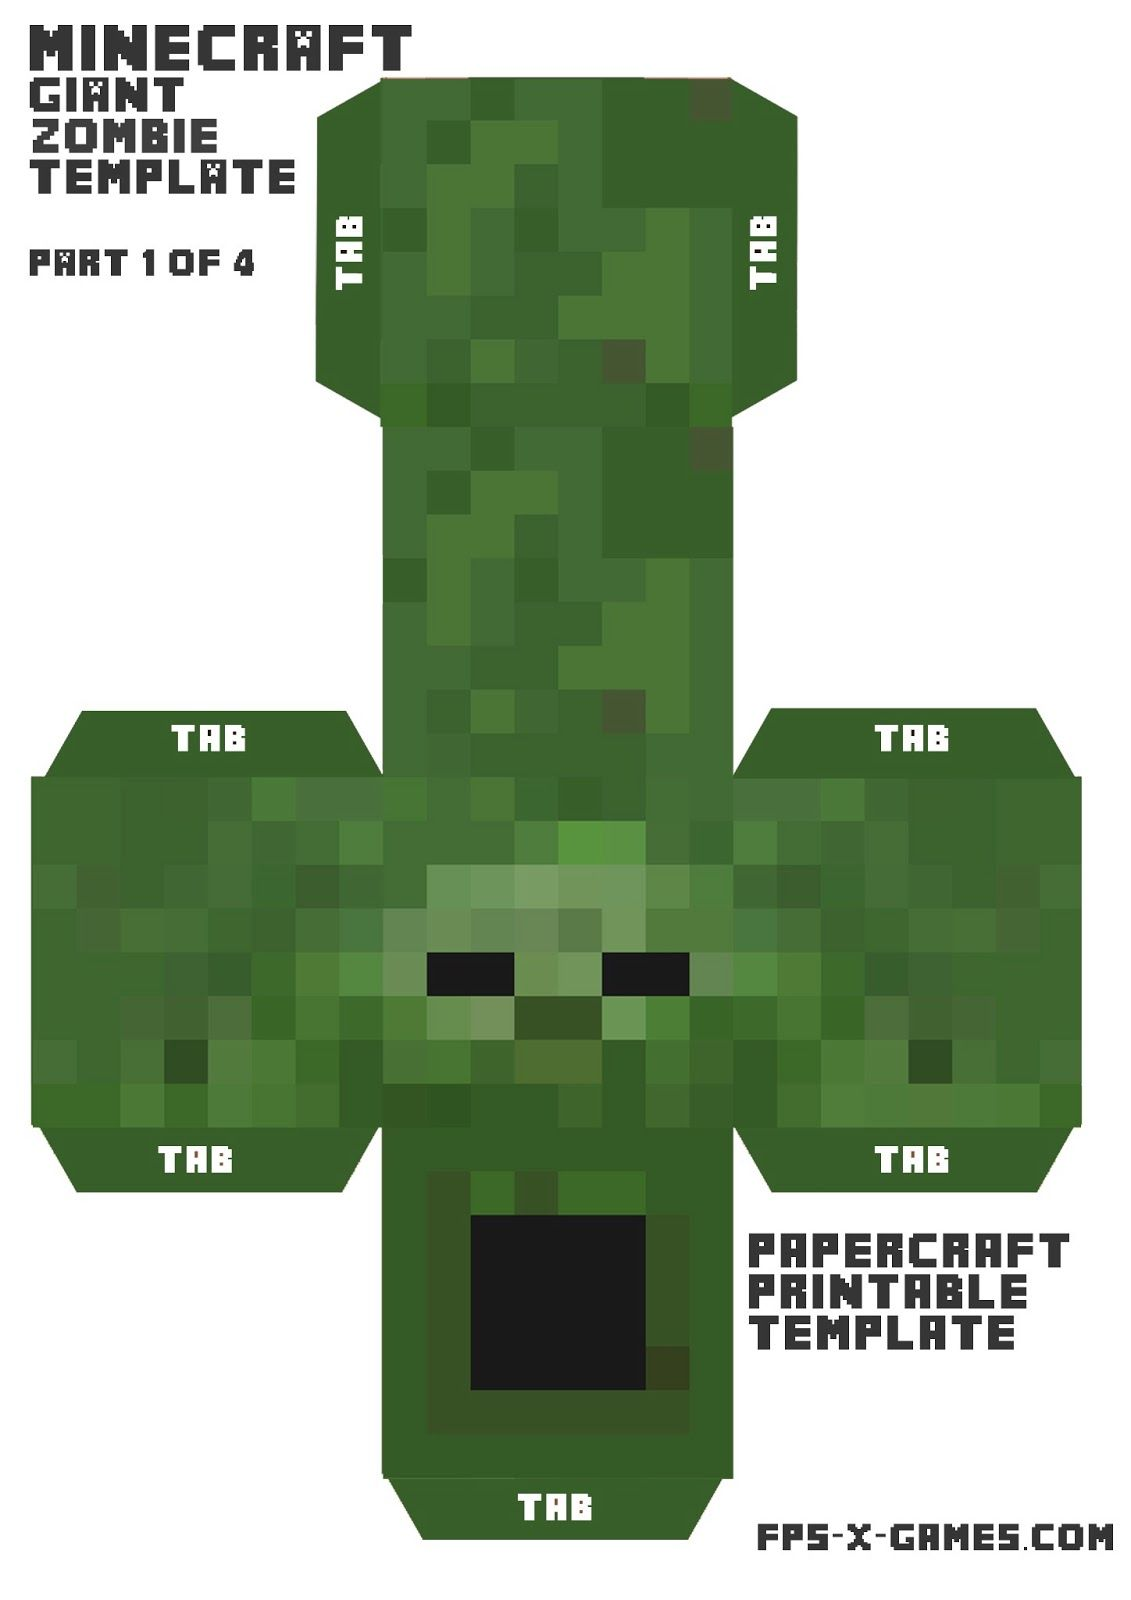 FPSXGames: Minecraft zombie large printable cutout character